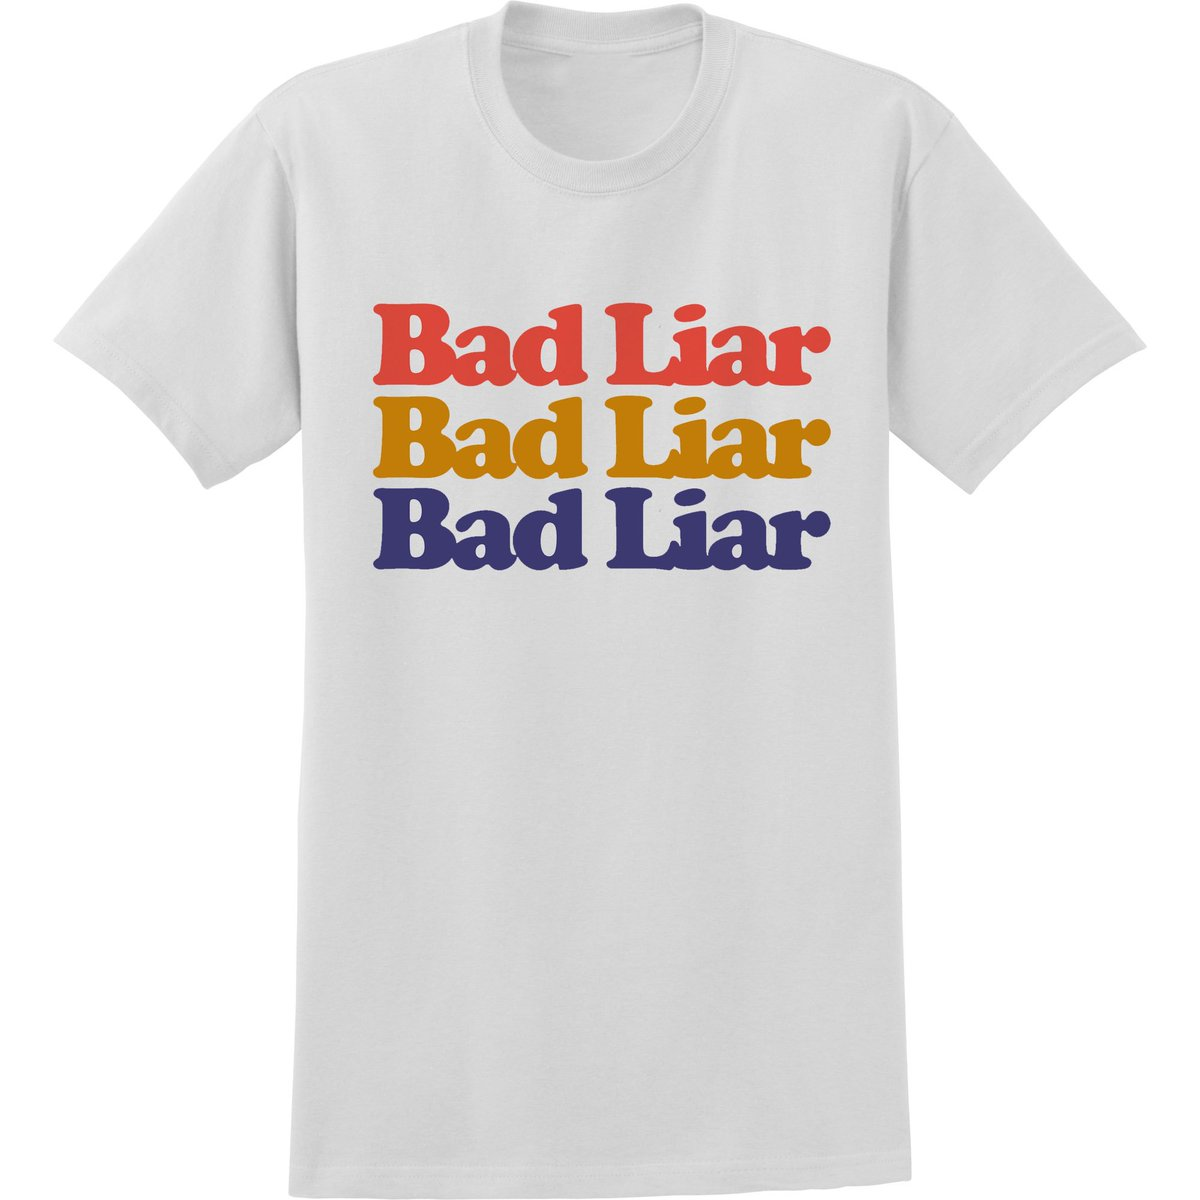 Get exclusive #BadLiar merch available now. https://t.co/GUrFQDsv5B ht...